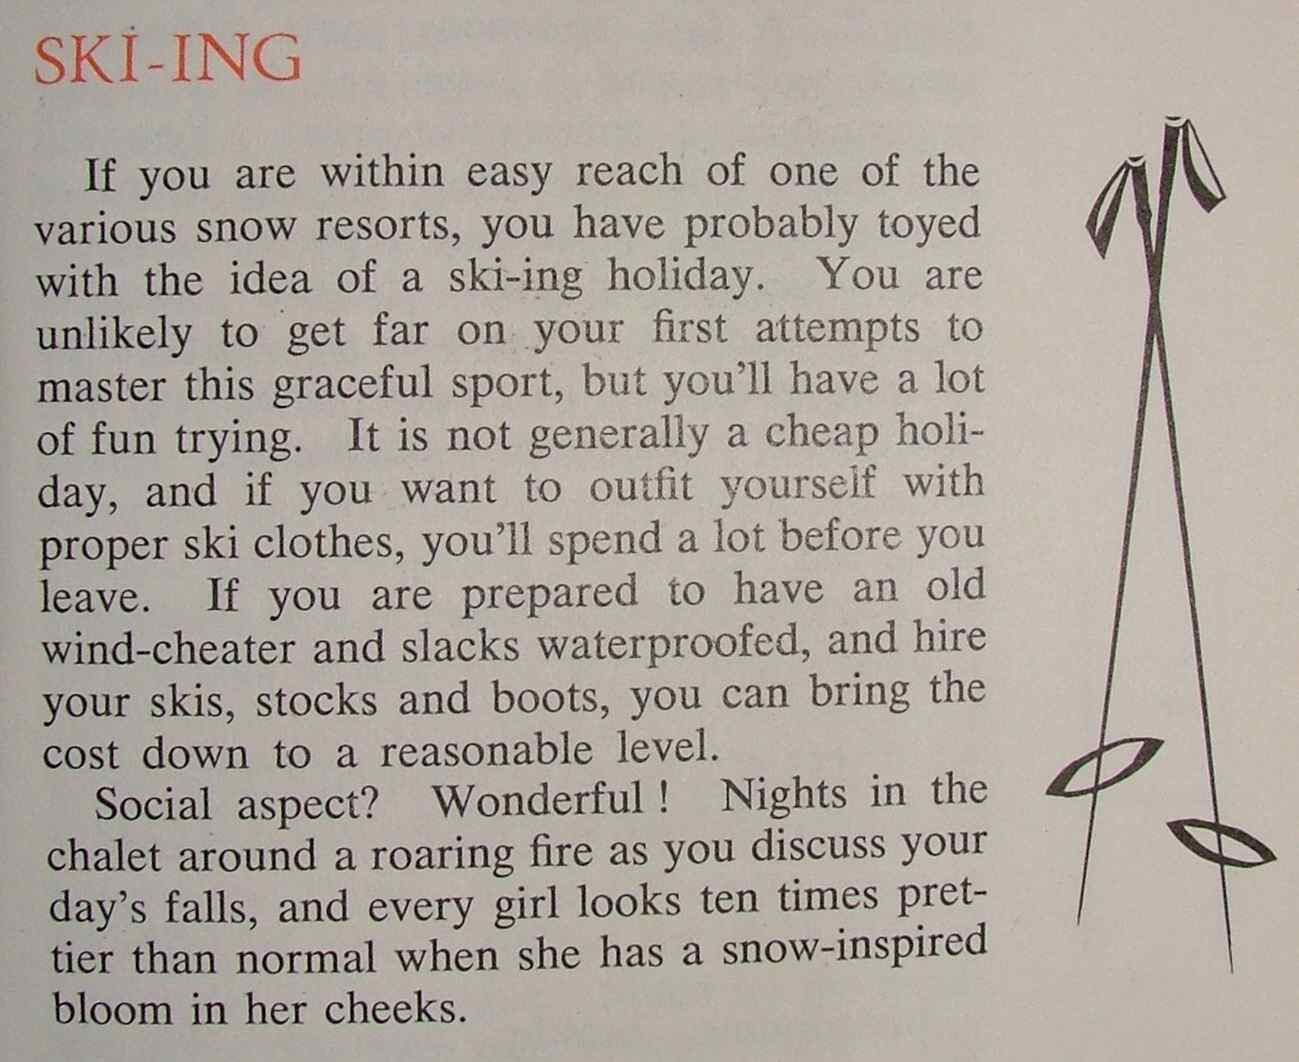 Skiing tips Woman's World photo source: theartofcostume.wordpress.com